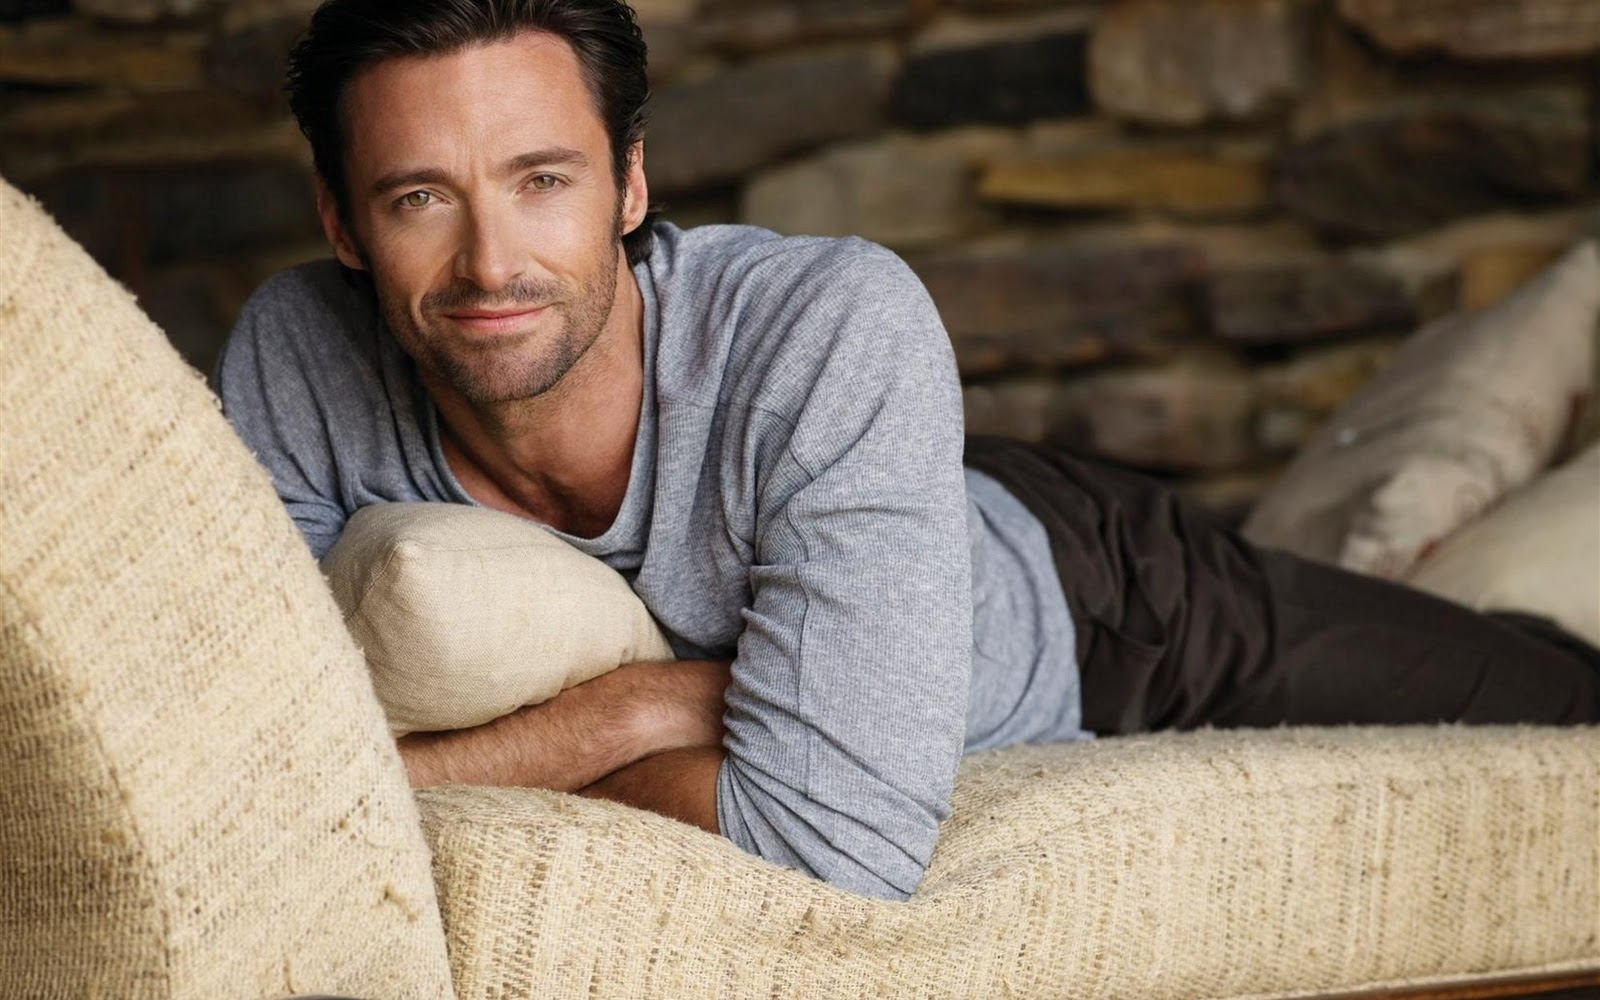 http://2.bp.blogspot.com/_IFSoqaK8ZvI/TS7Jf9mmrRI/AAAAAAAAANw/3169inyhHW8/s1600/Men_Male_Celebrity_Beautiful_Hugh_Jackman_023124_.jpg